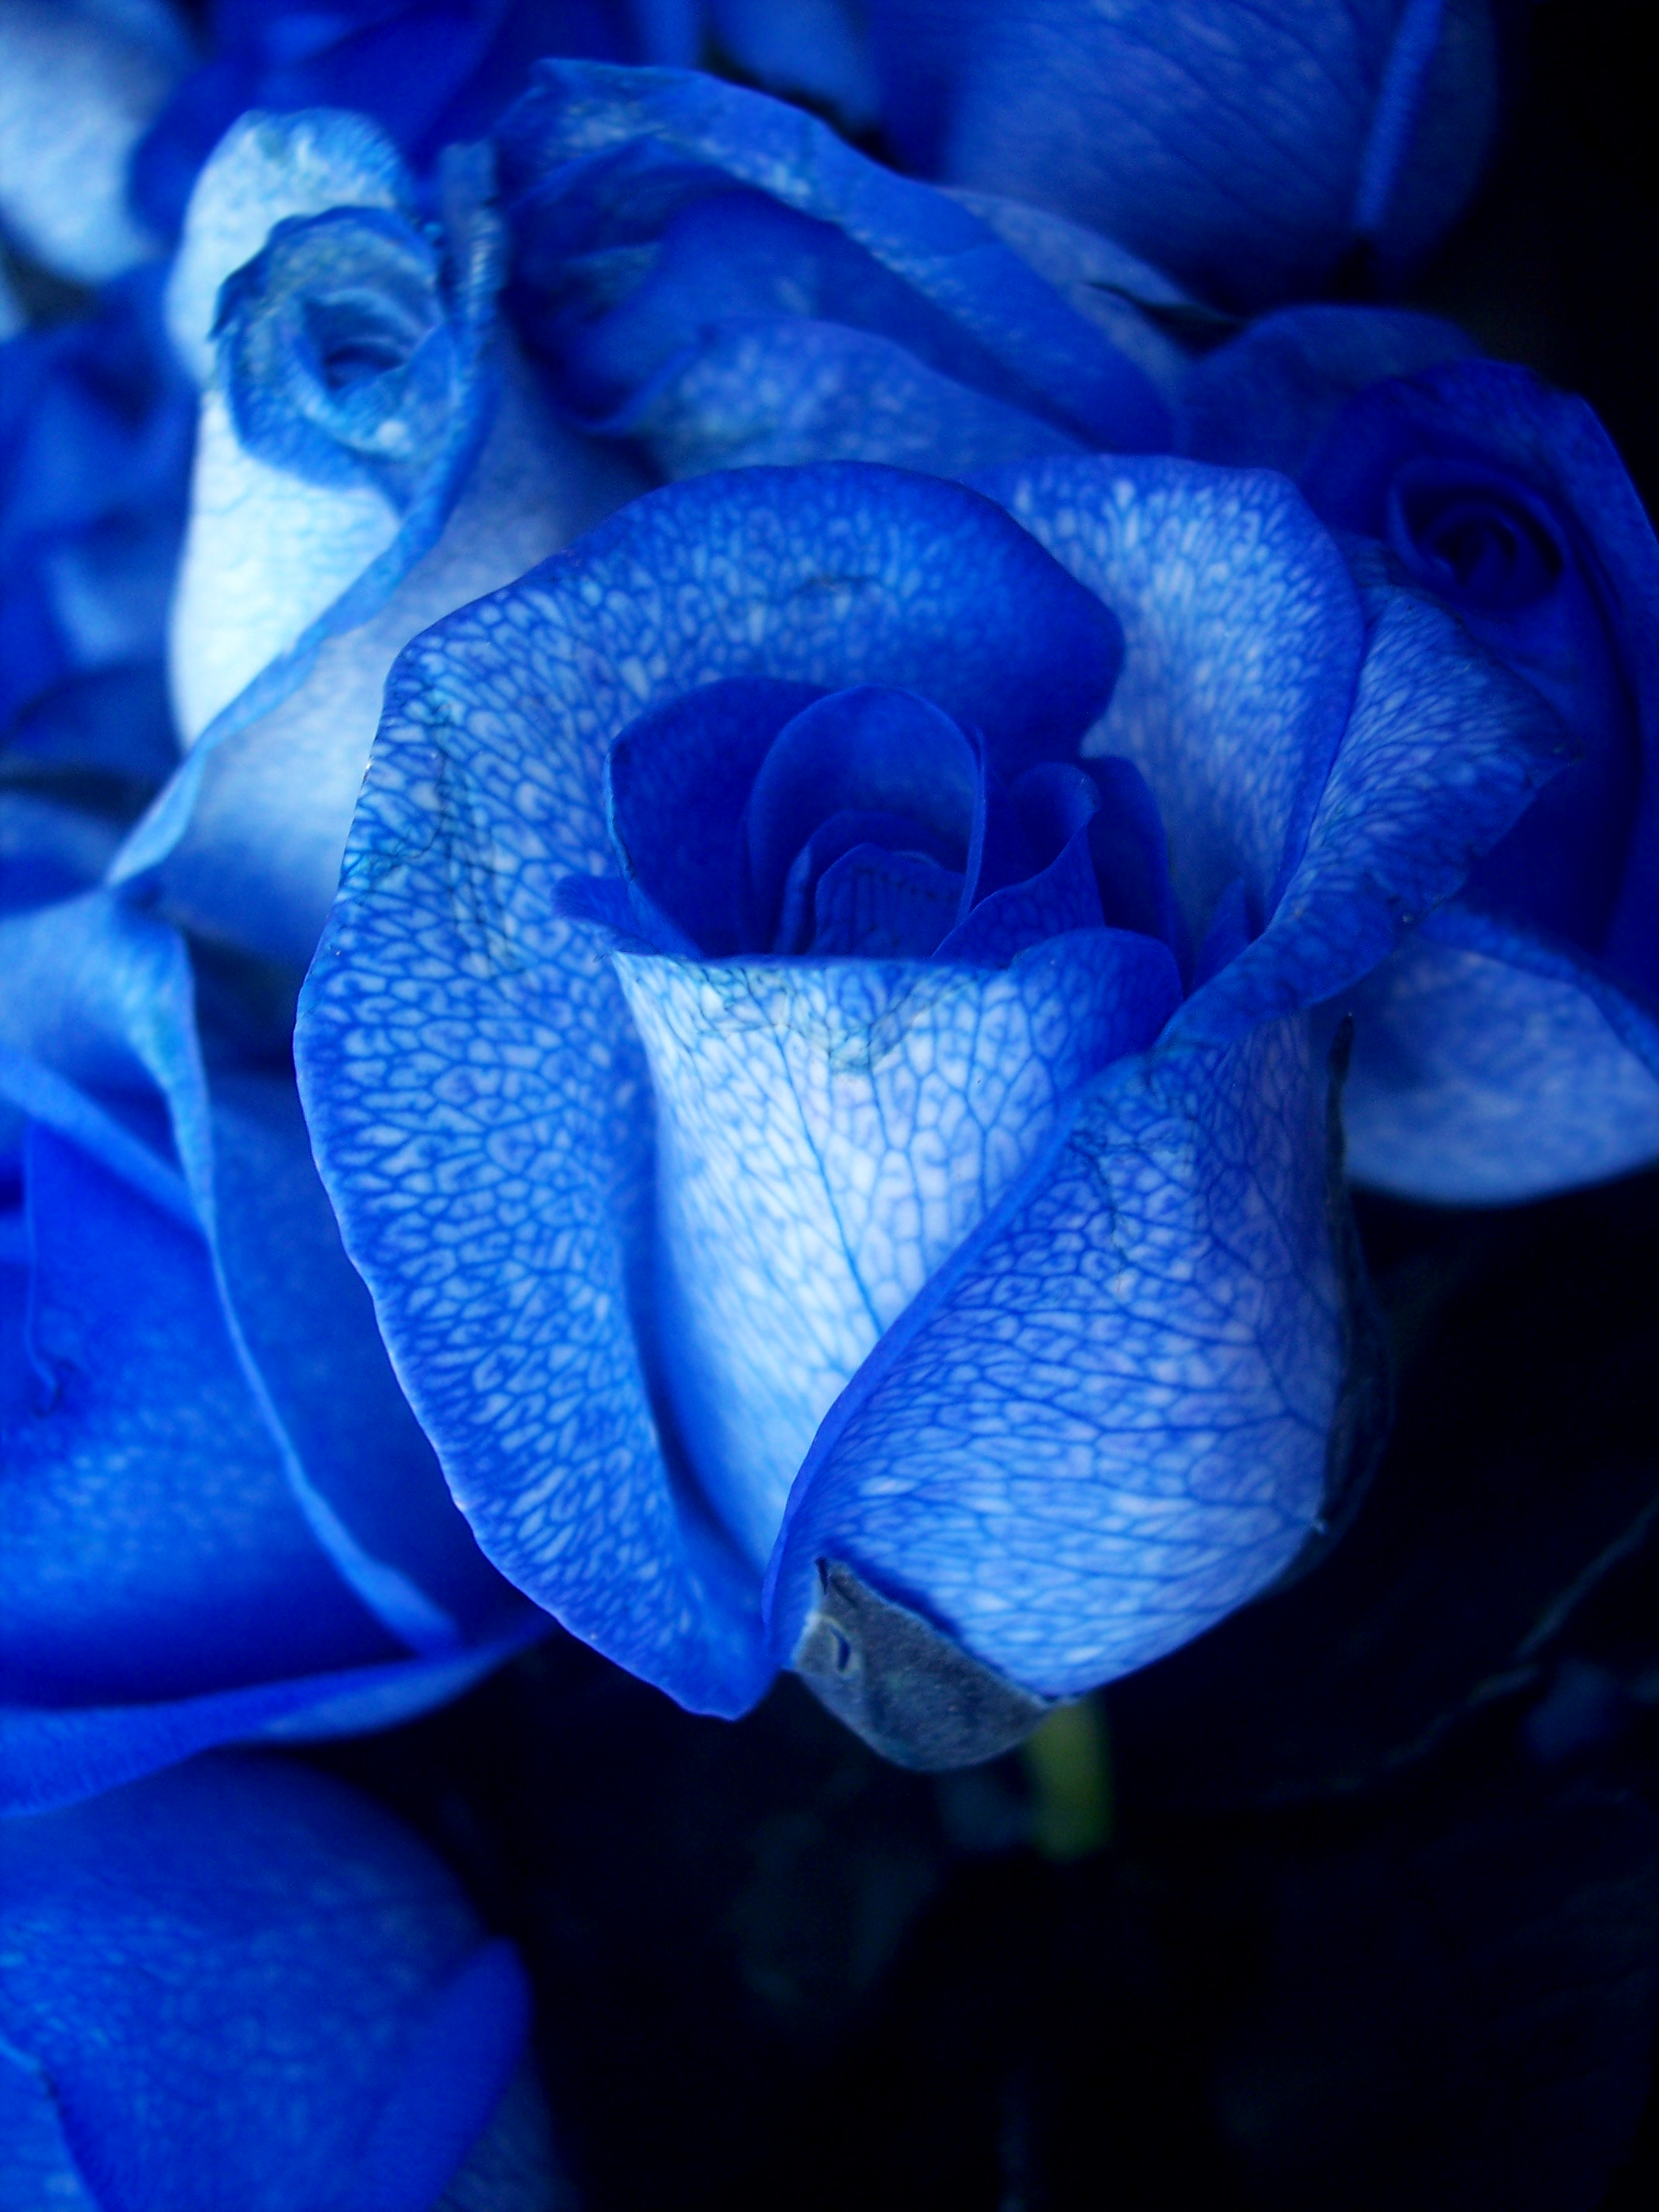 Blue Photos Blue rose